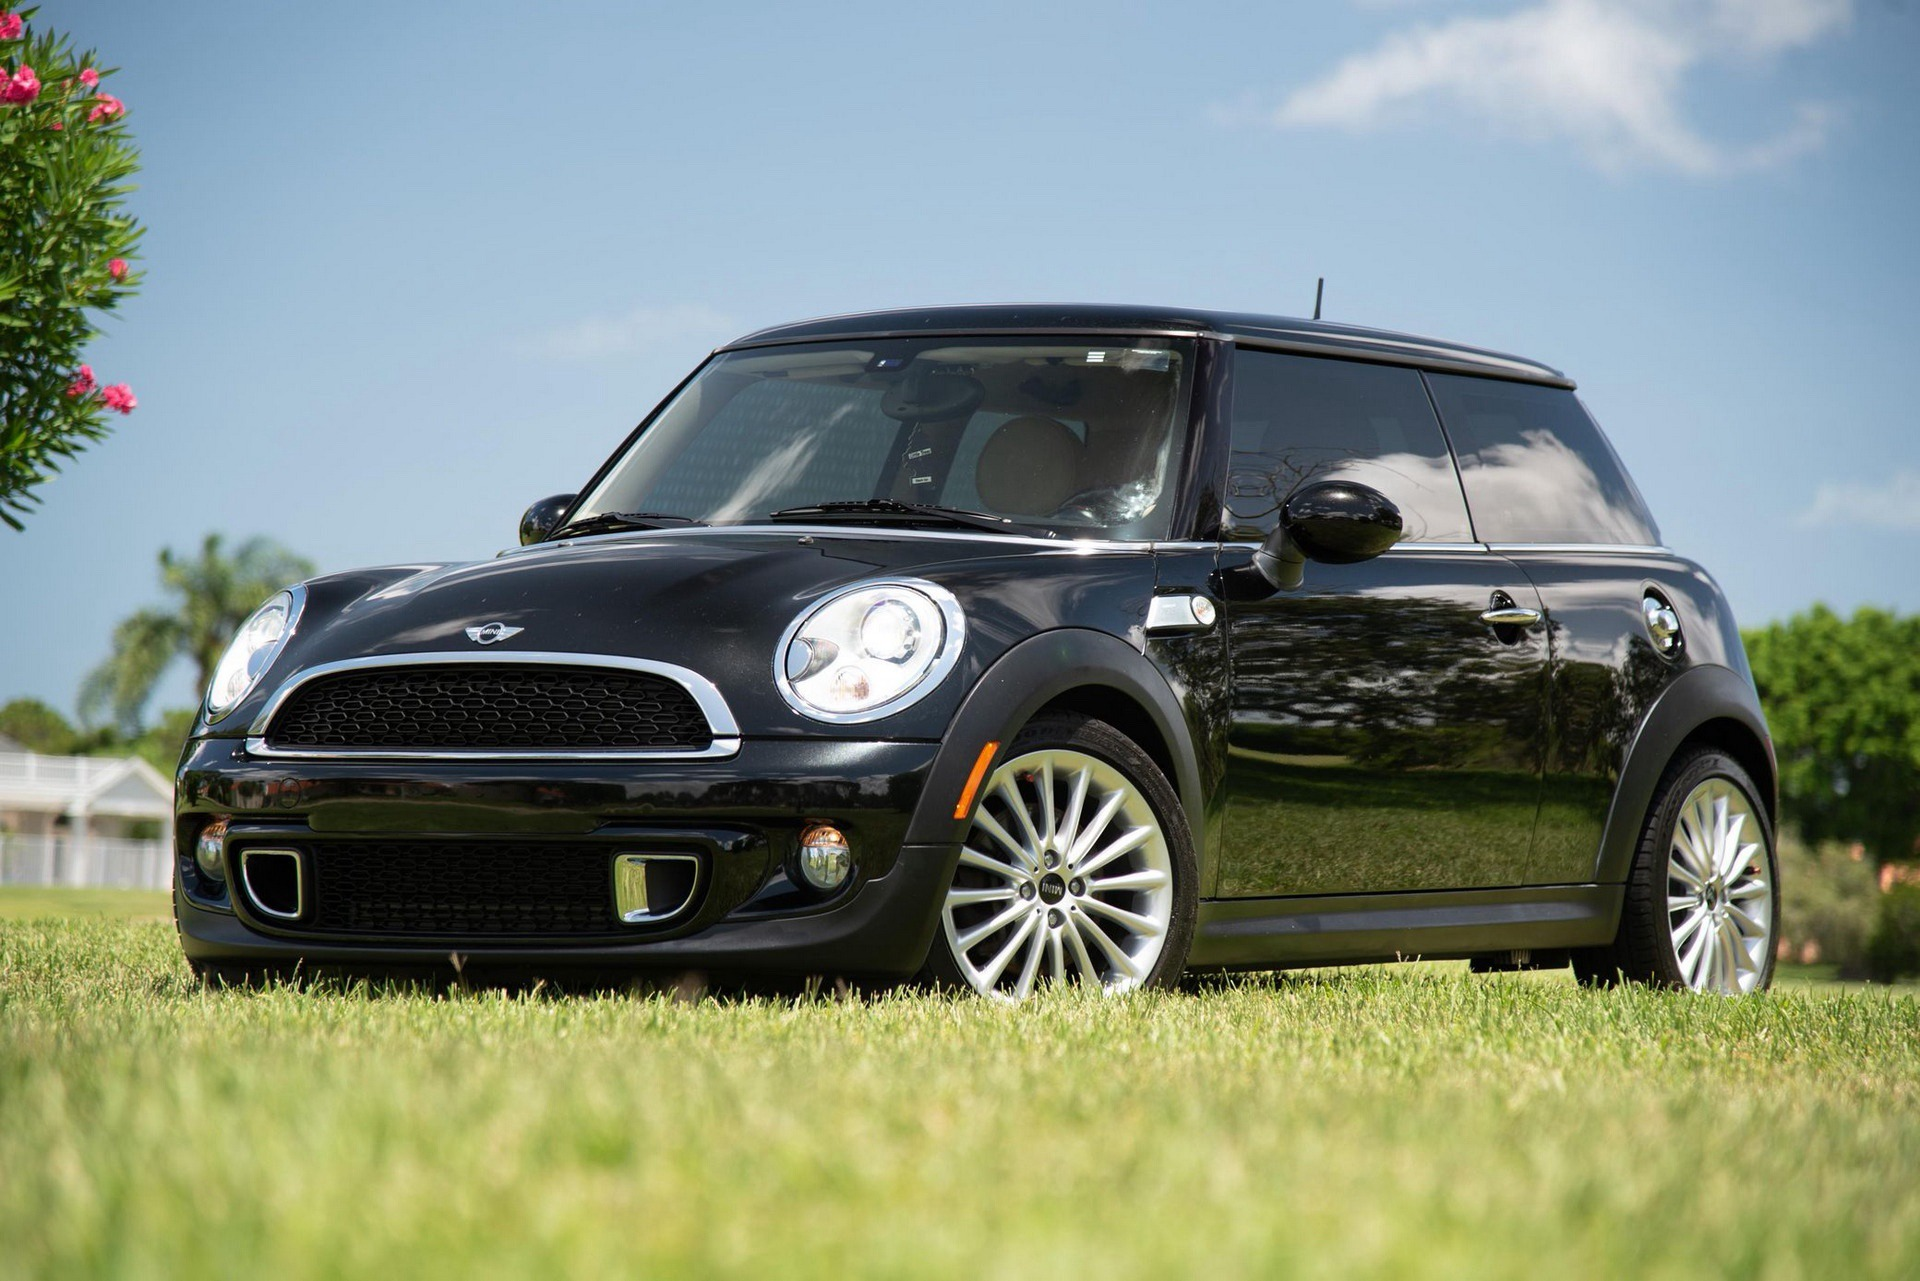 Mini_Cooper_S_Inspired_by_Goodwood-0036